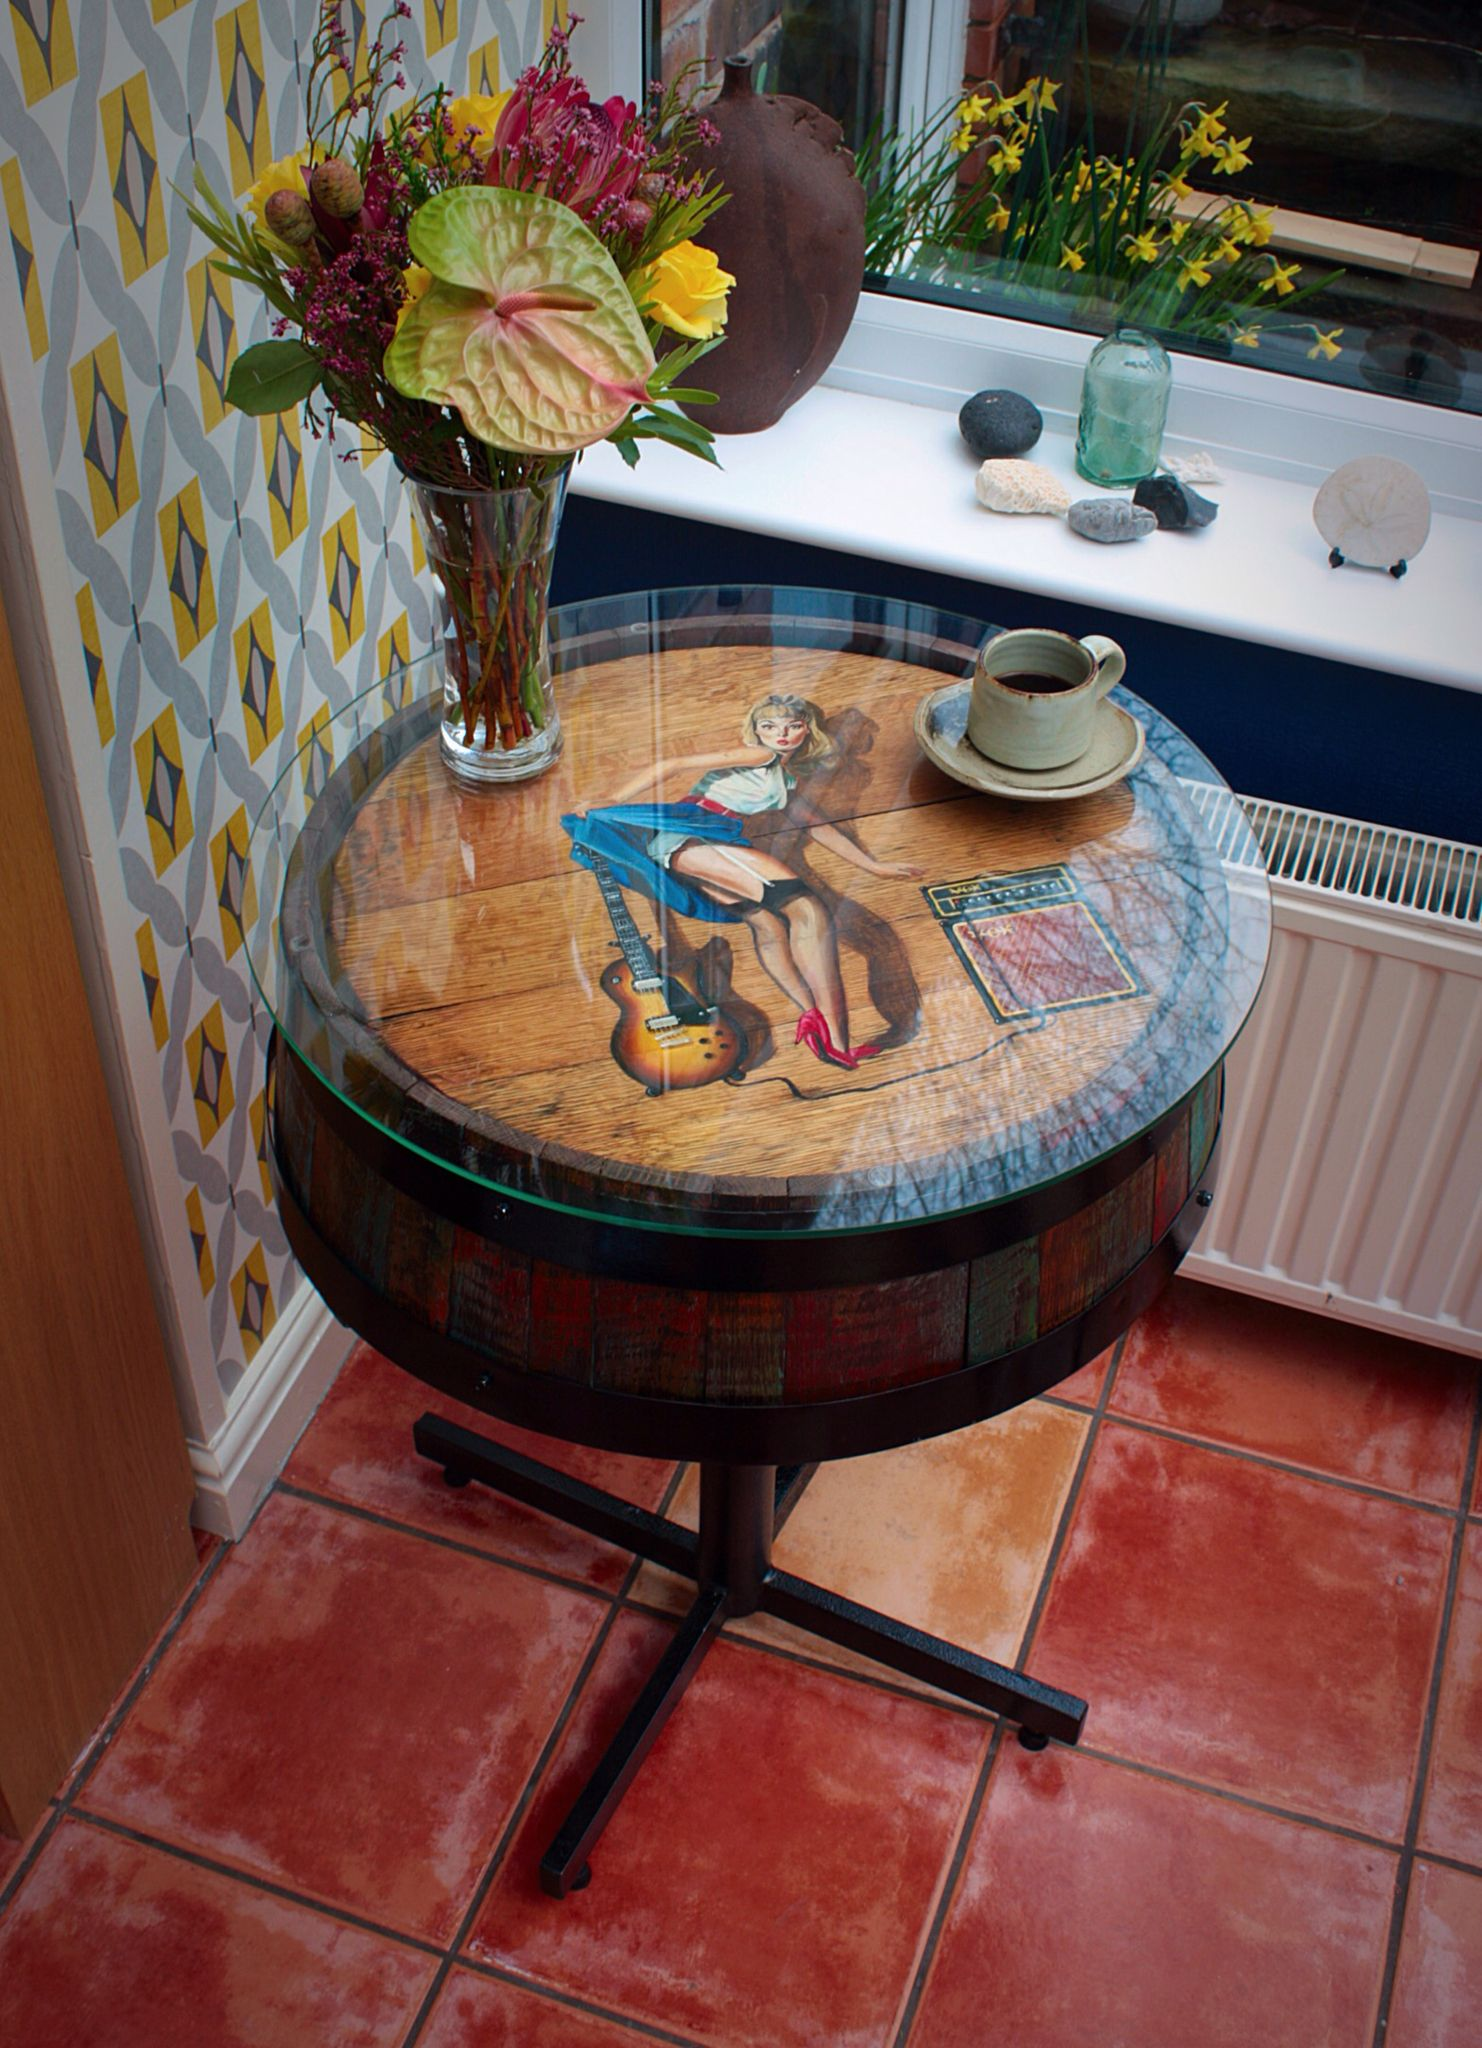 For sale 390 refurbished hand painted and finished side table for sale 390 refurbished hand painted and finished side tablecoffee table a beautiful solid oak jack daniels whiskey barrel table geotapseo Images